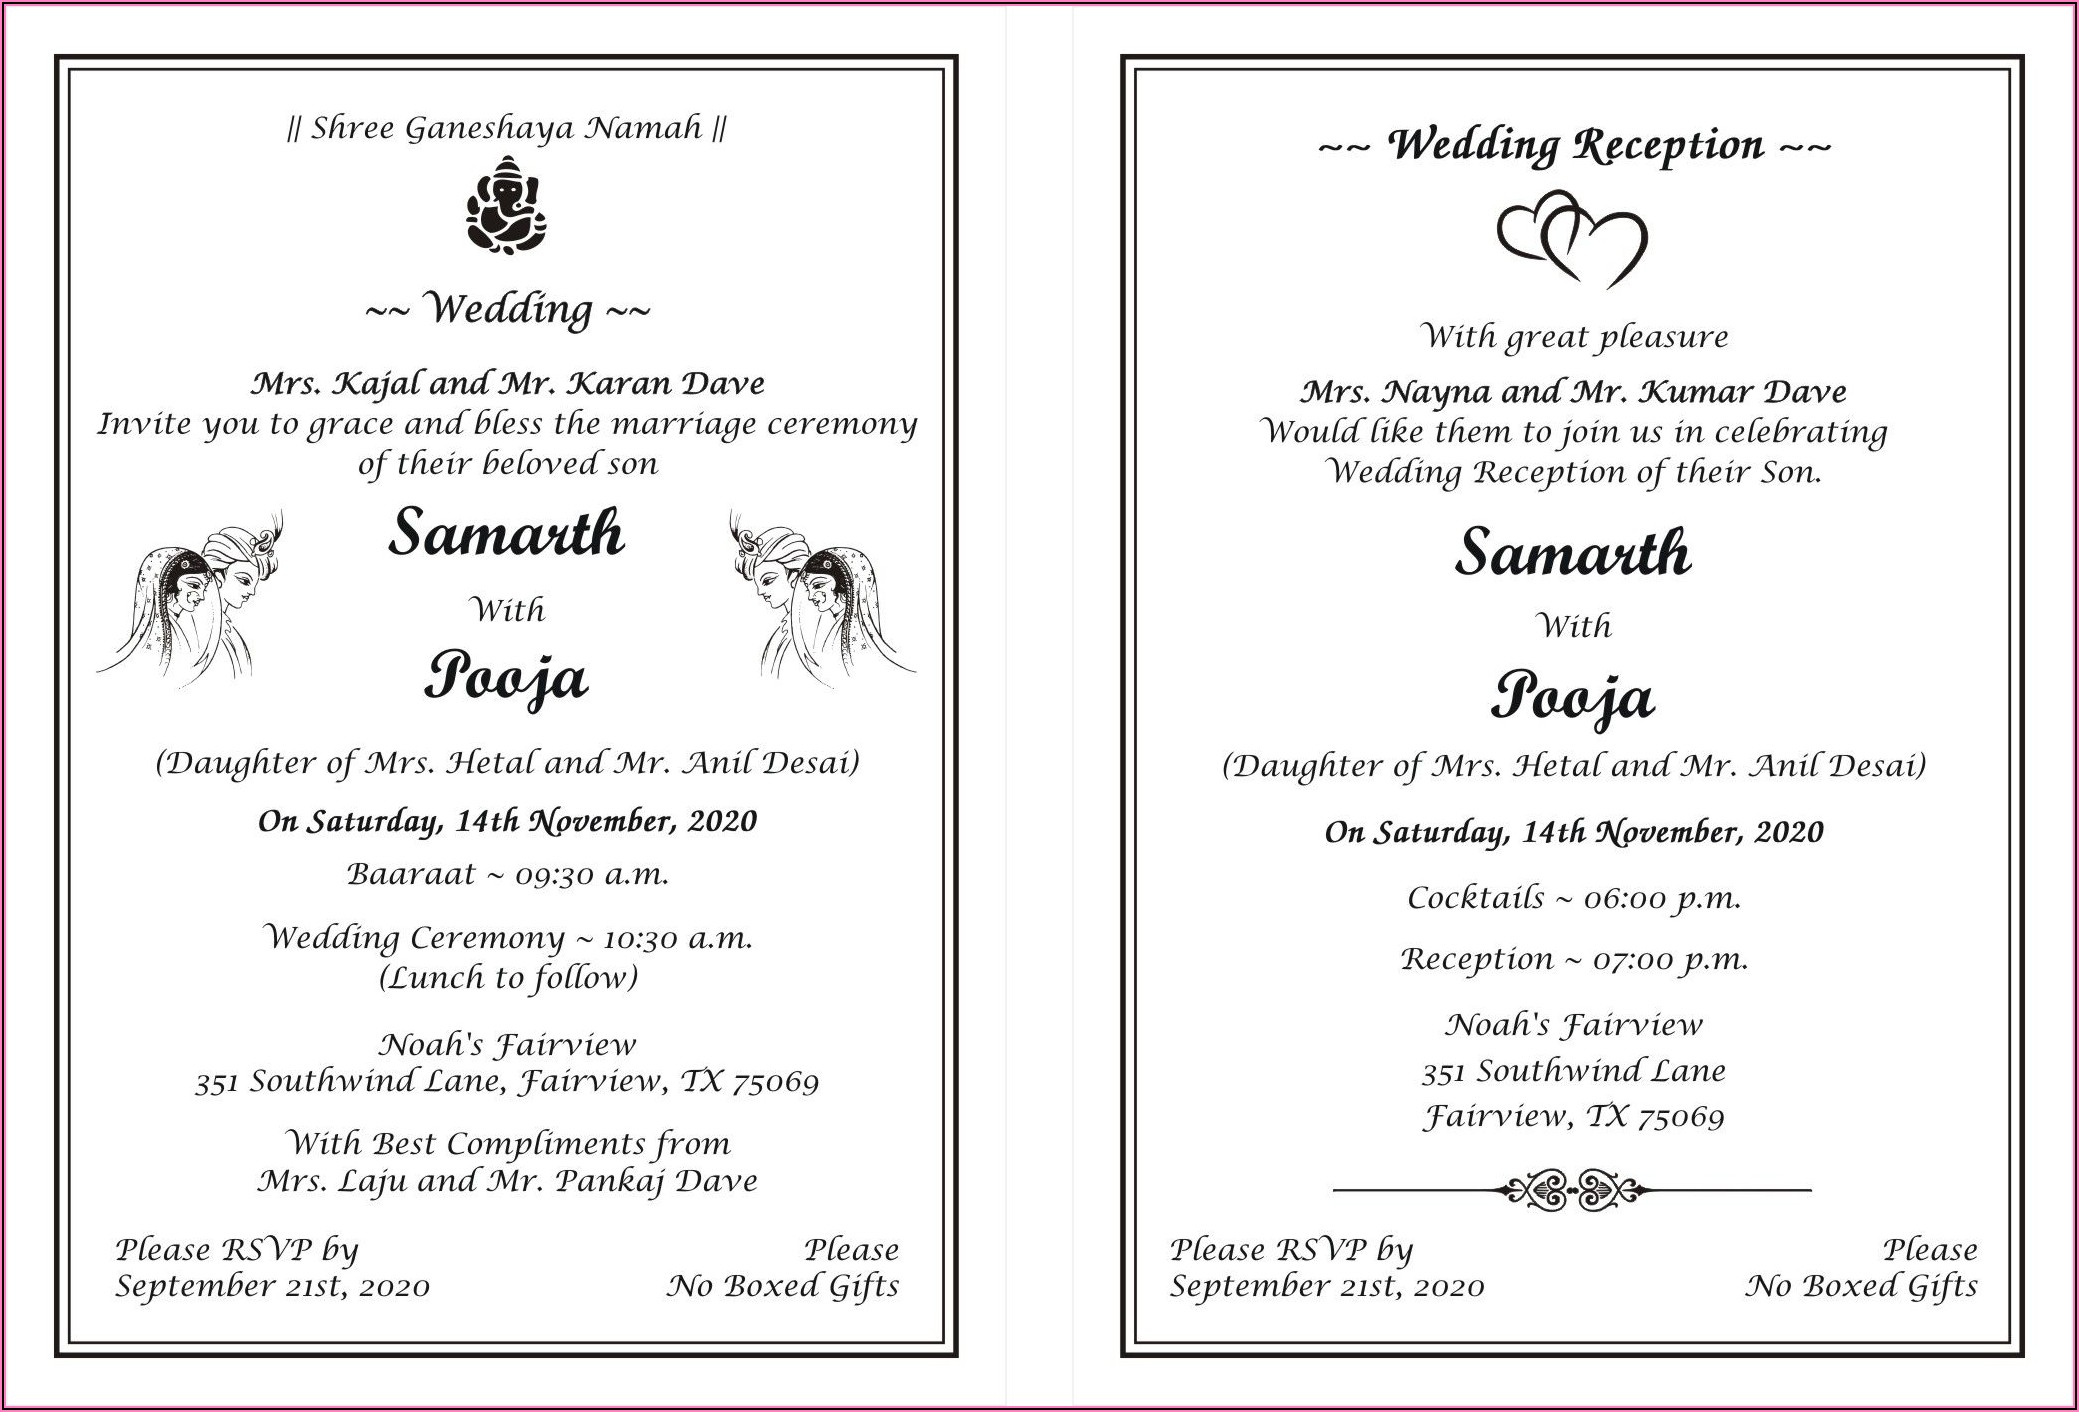 Hindu Marriage Invitation Card Format In Word